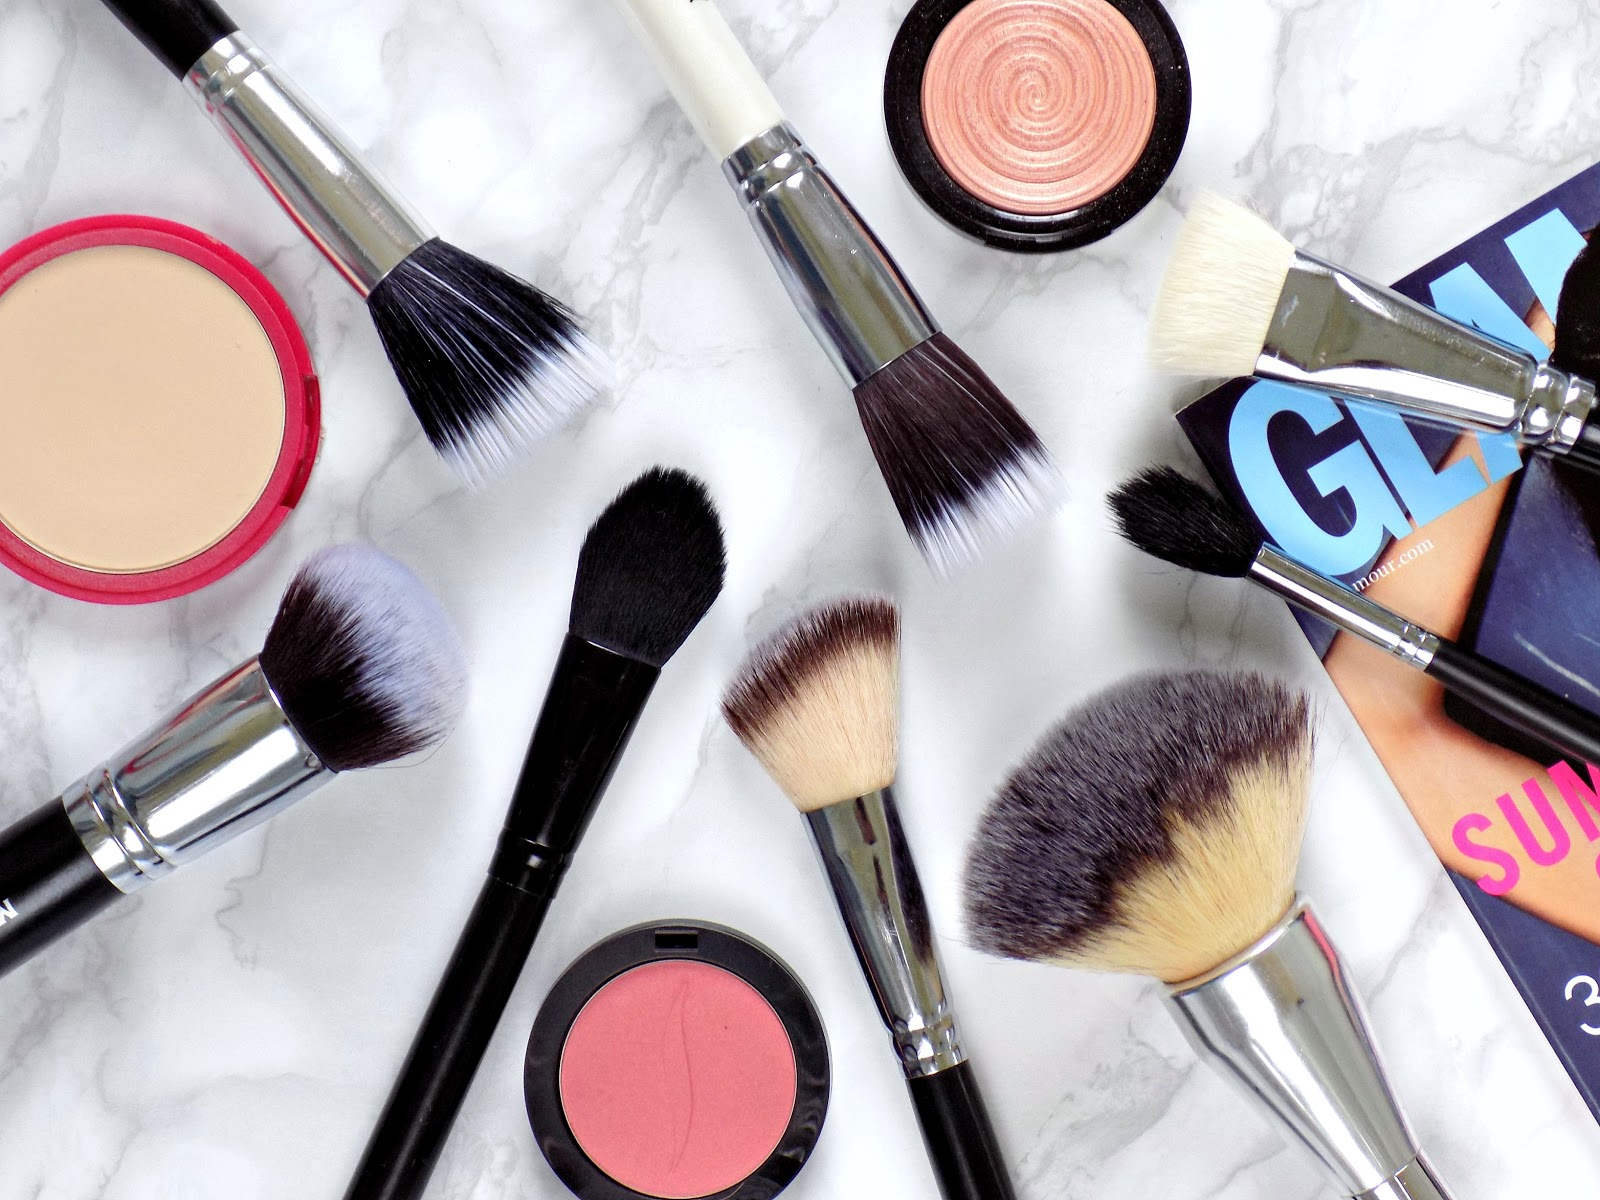 Essential face makeup brushes